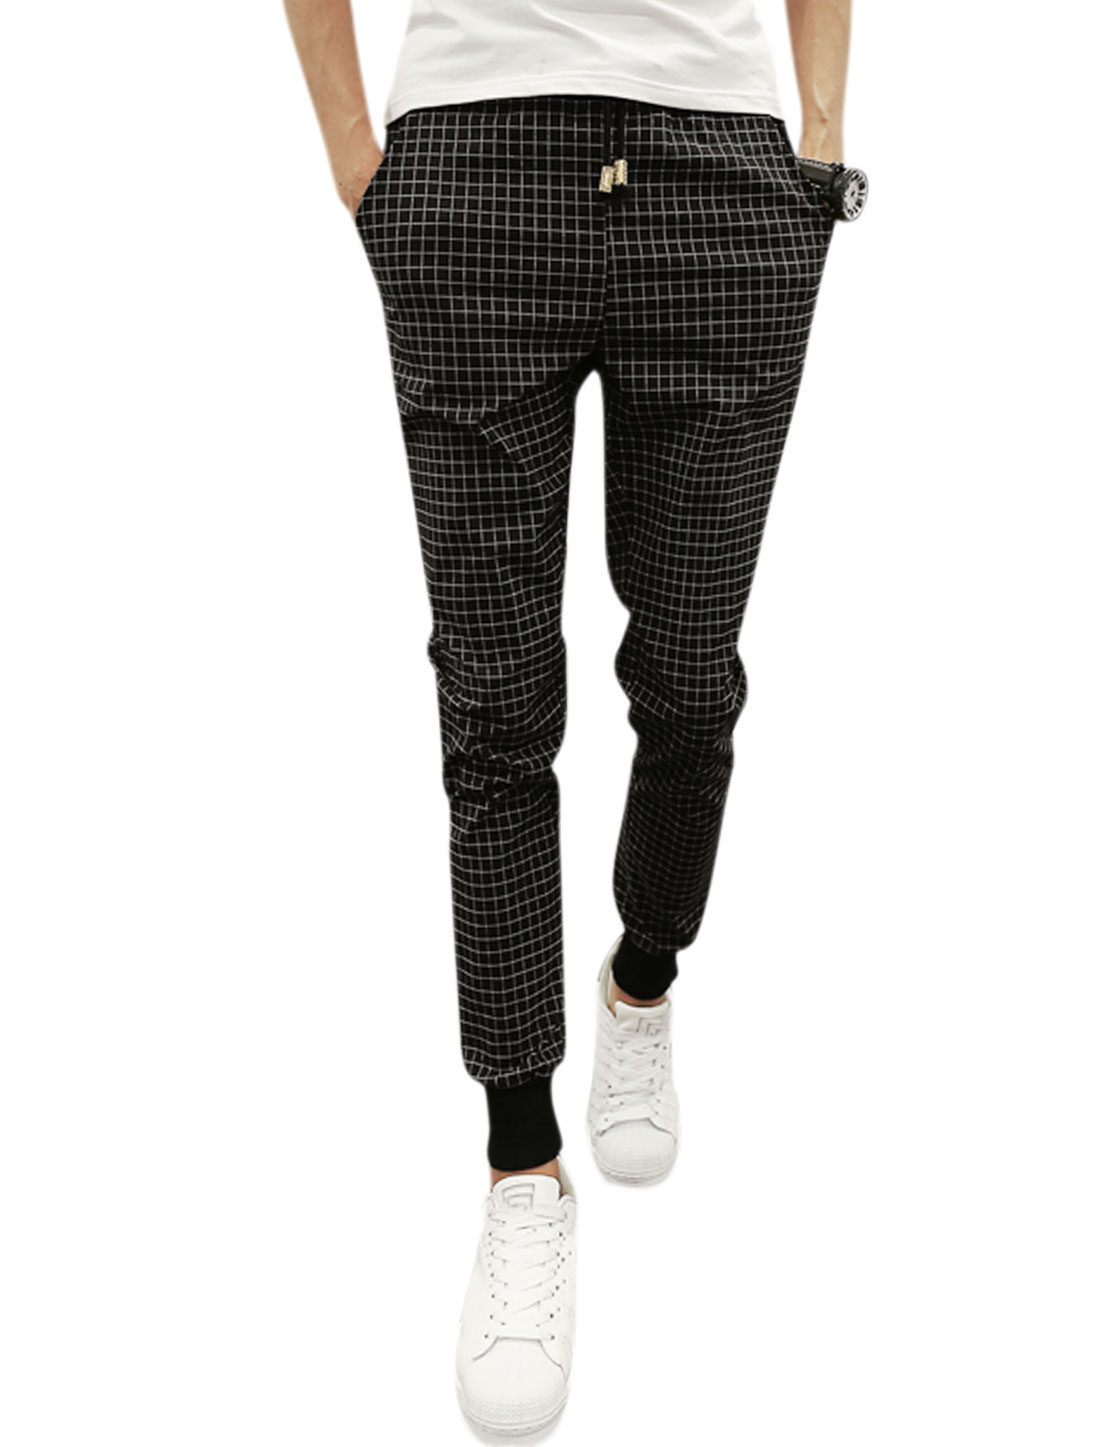 Men Drawstring Waist Plaids Leisure Tapered Pants Black W32